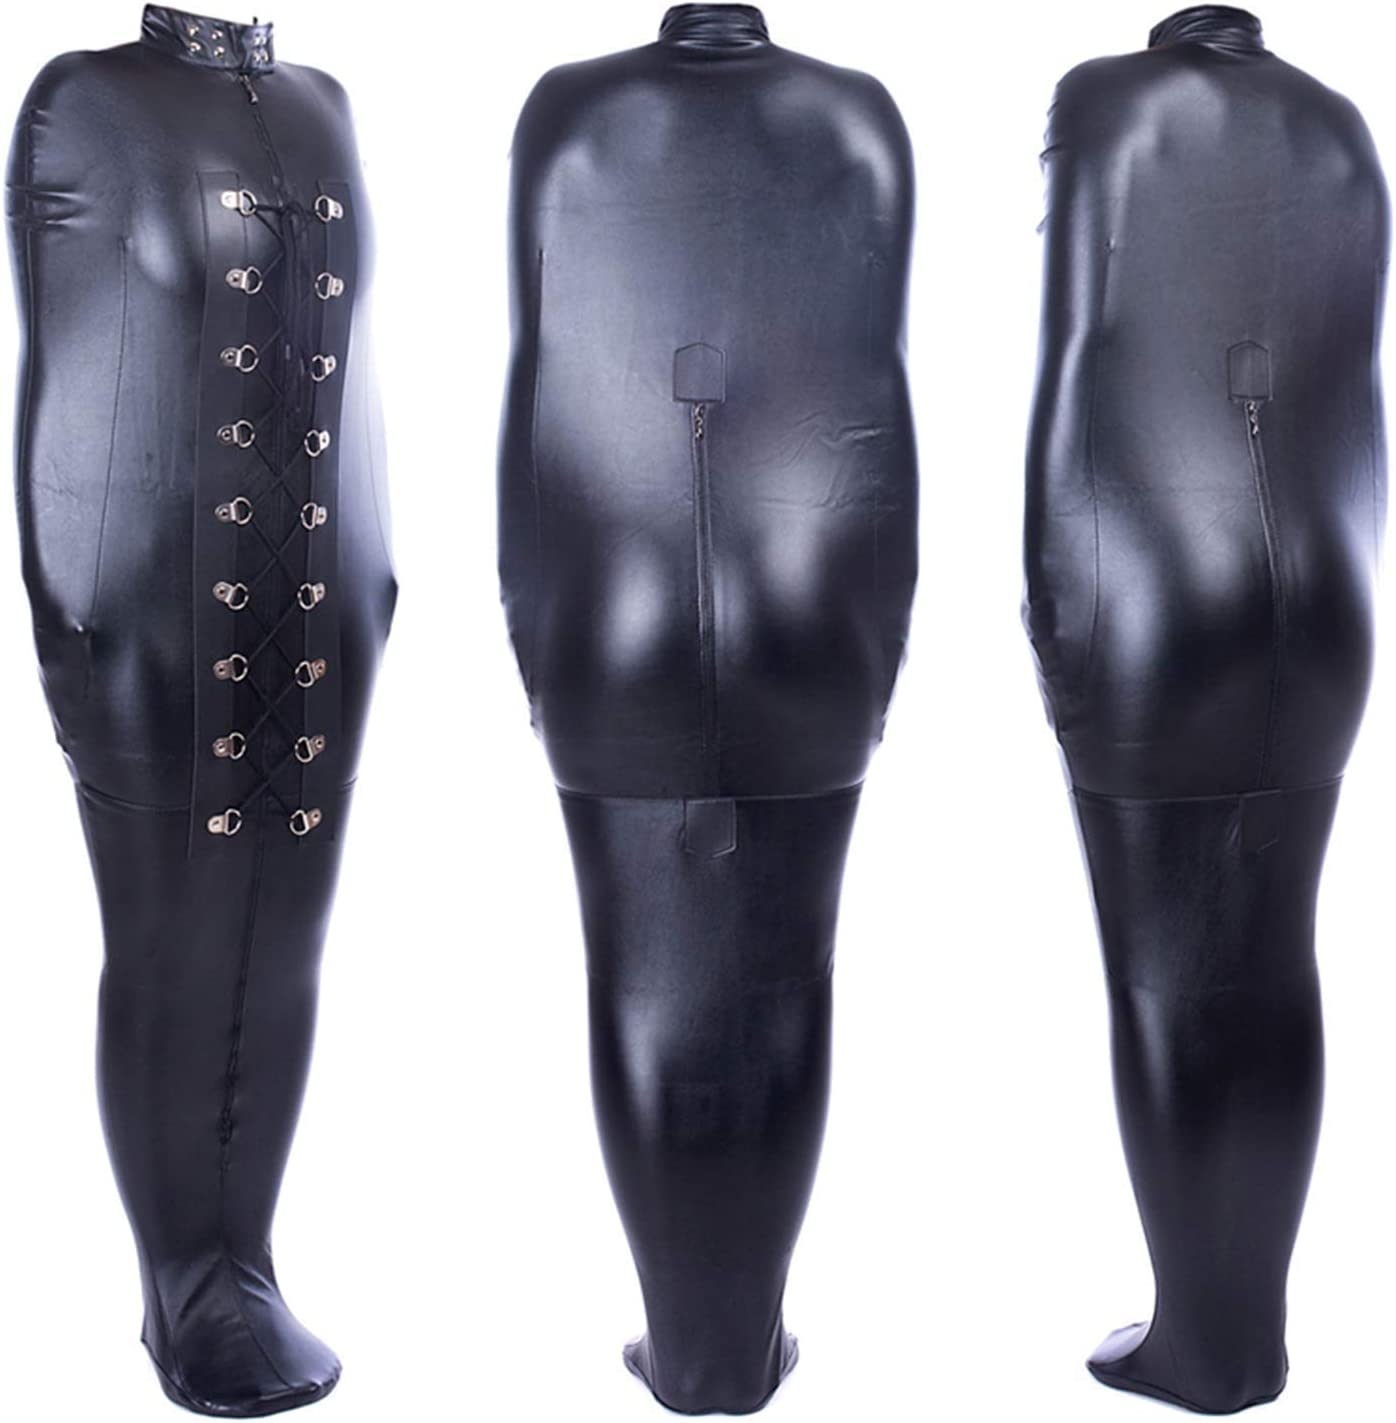 LEATHER MERMAID Leg Restraints Adult Bondage Full Length Clothes Flirt Toys